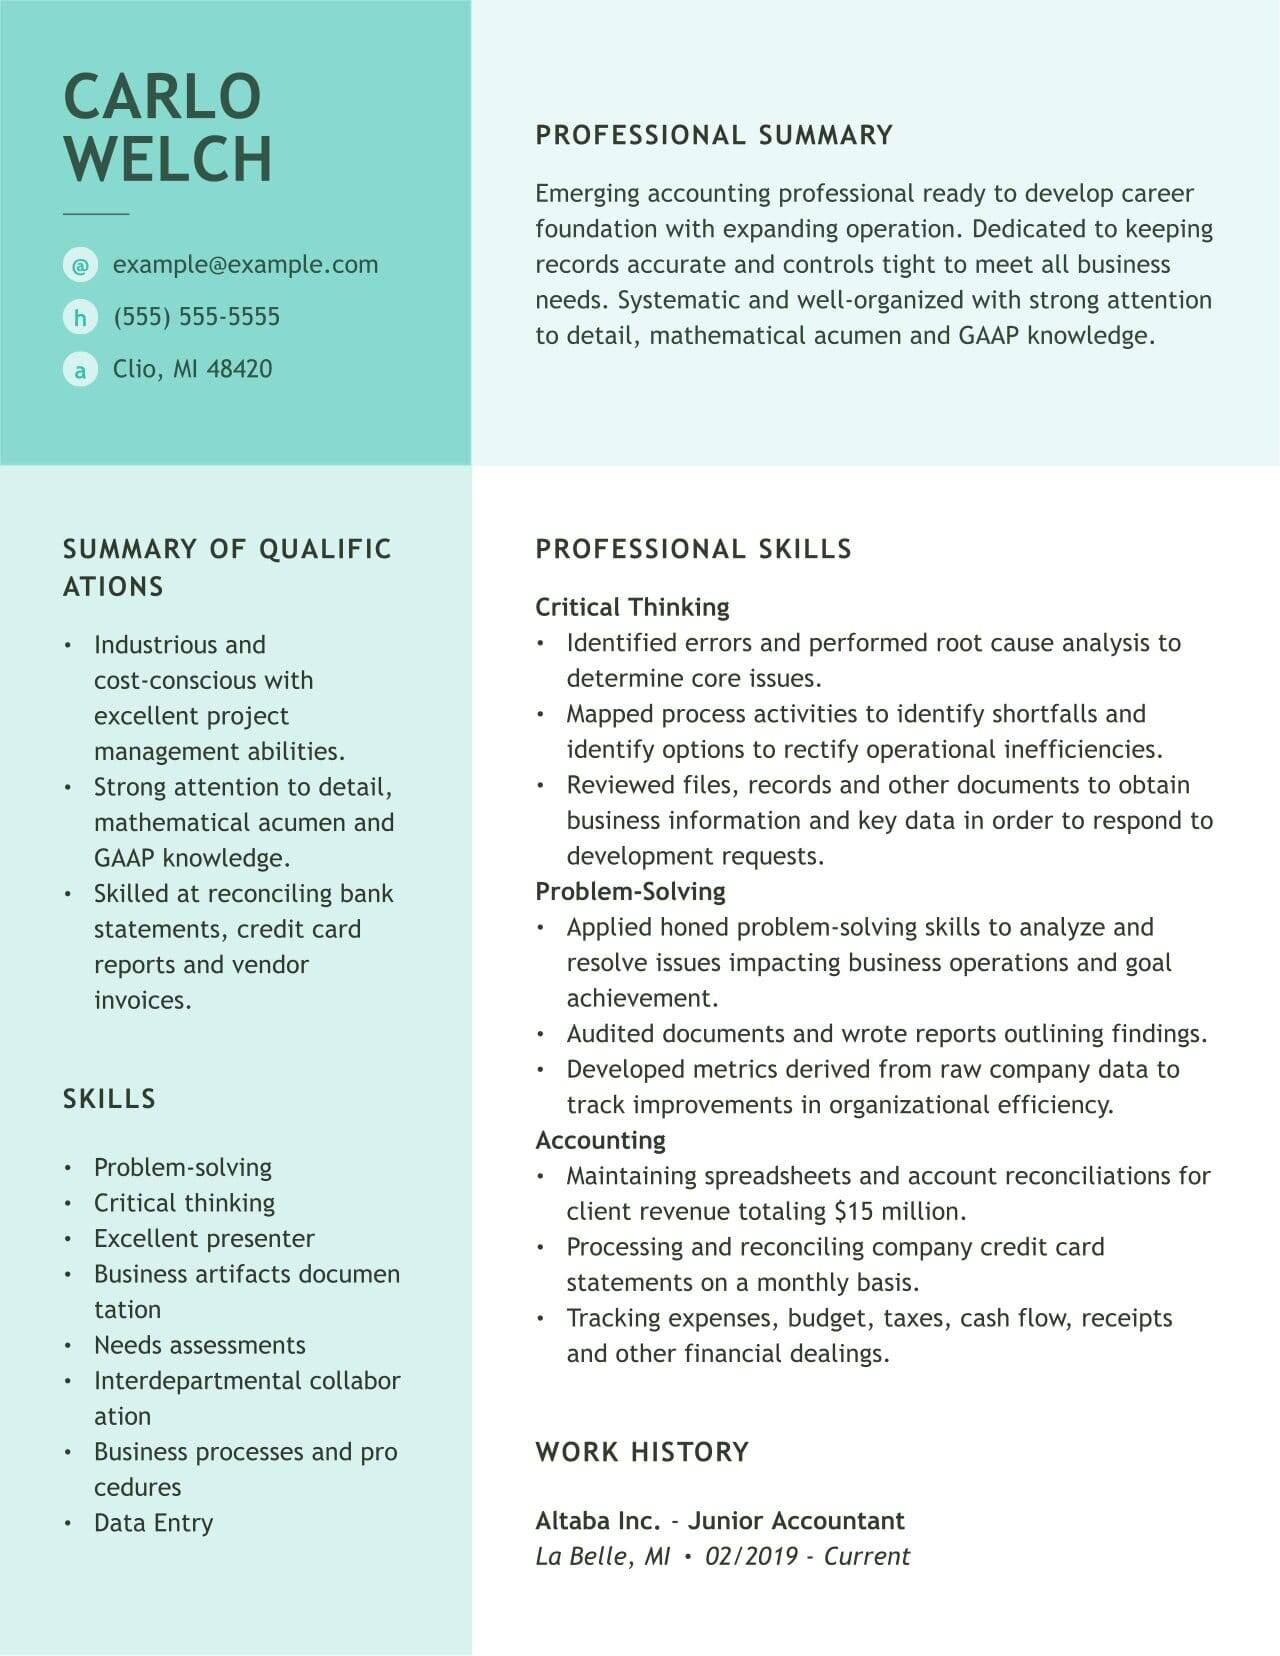 accounting resume examples and guides myperfectresume junioraccountant presales solution Resume Accounting Resume Examples 2020